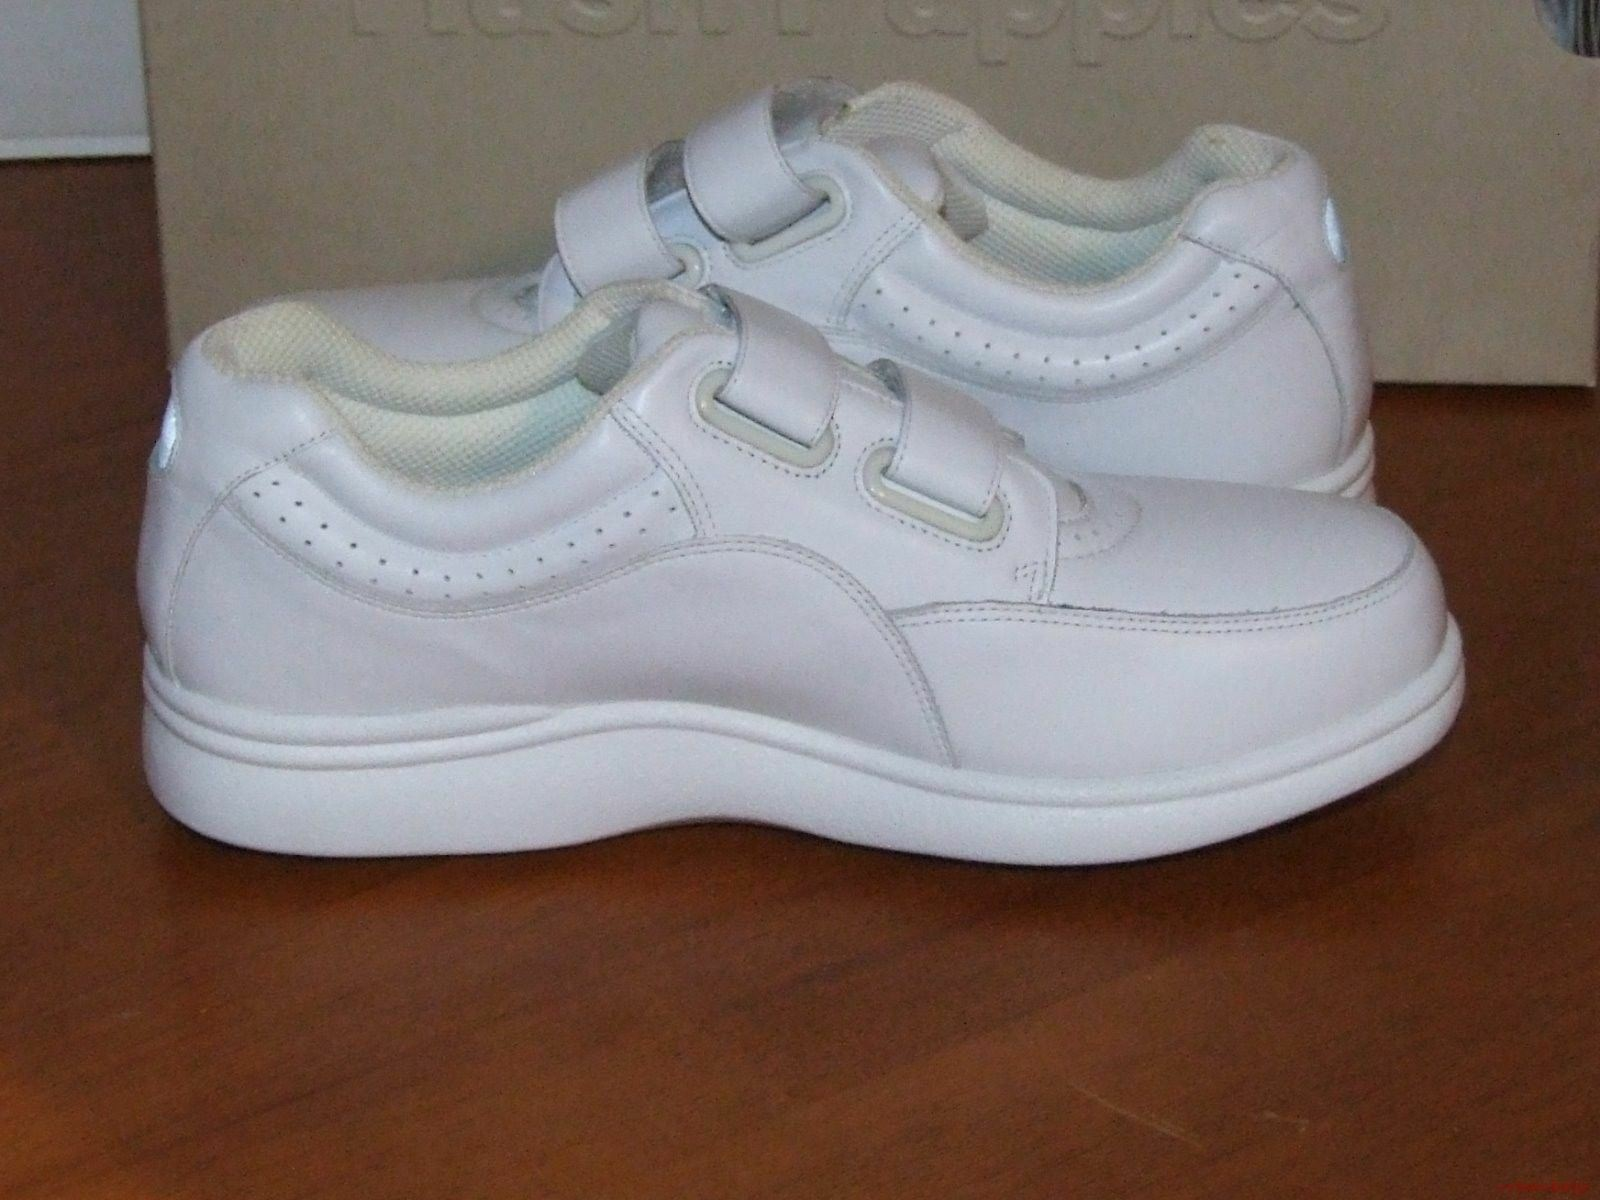 Hush Puppies Power Walker II II II Zapatillas De Cuero Blanco 91659b